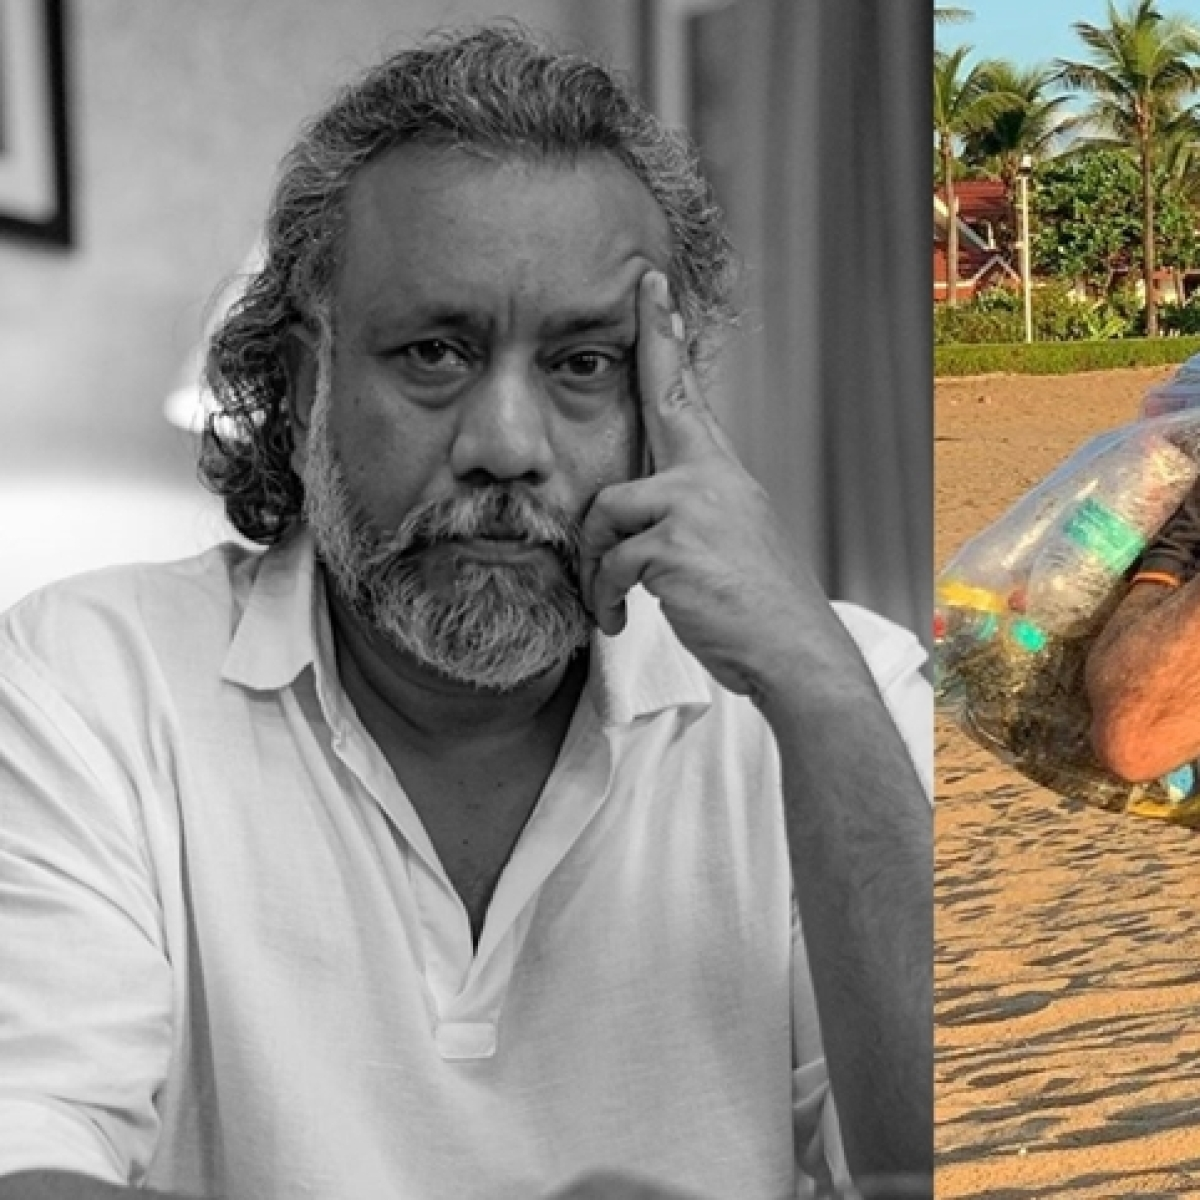 Did 'Article 15' director Anubhav Sinha call PM Modi a 'bad actor' in cryptic tweet?